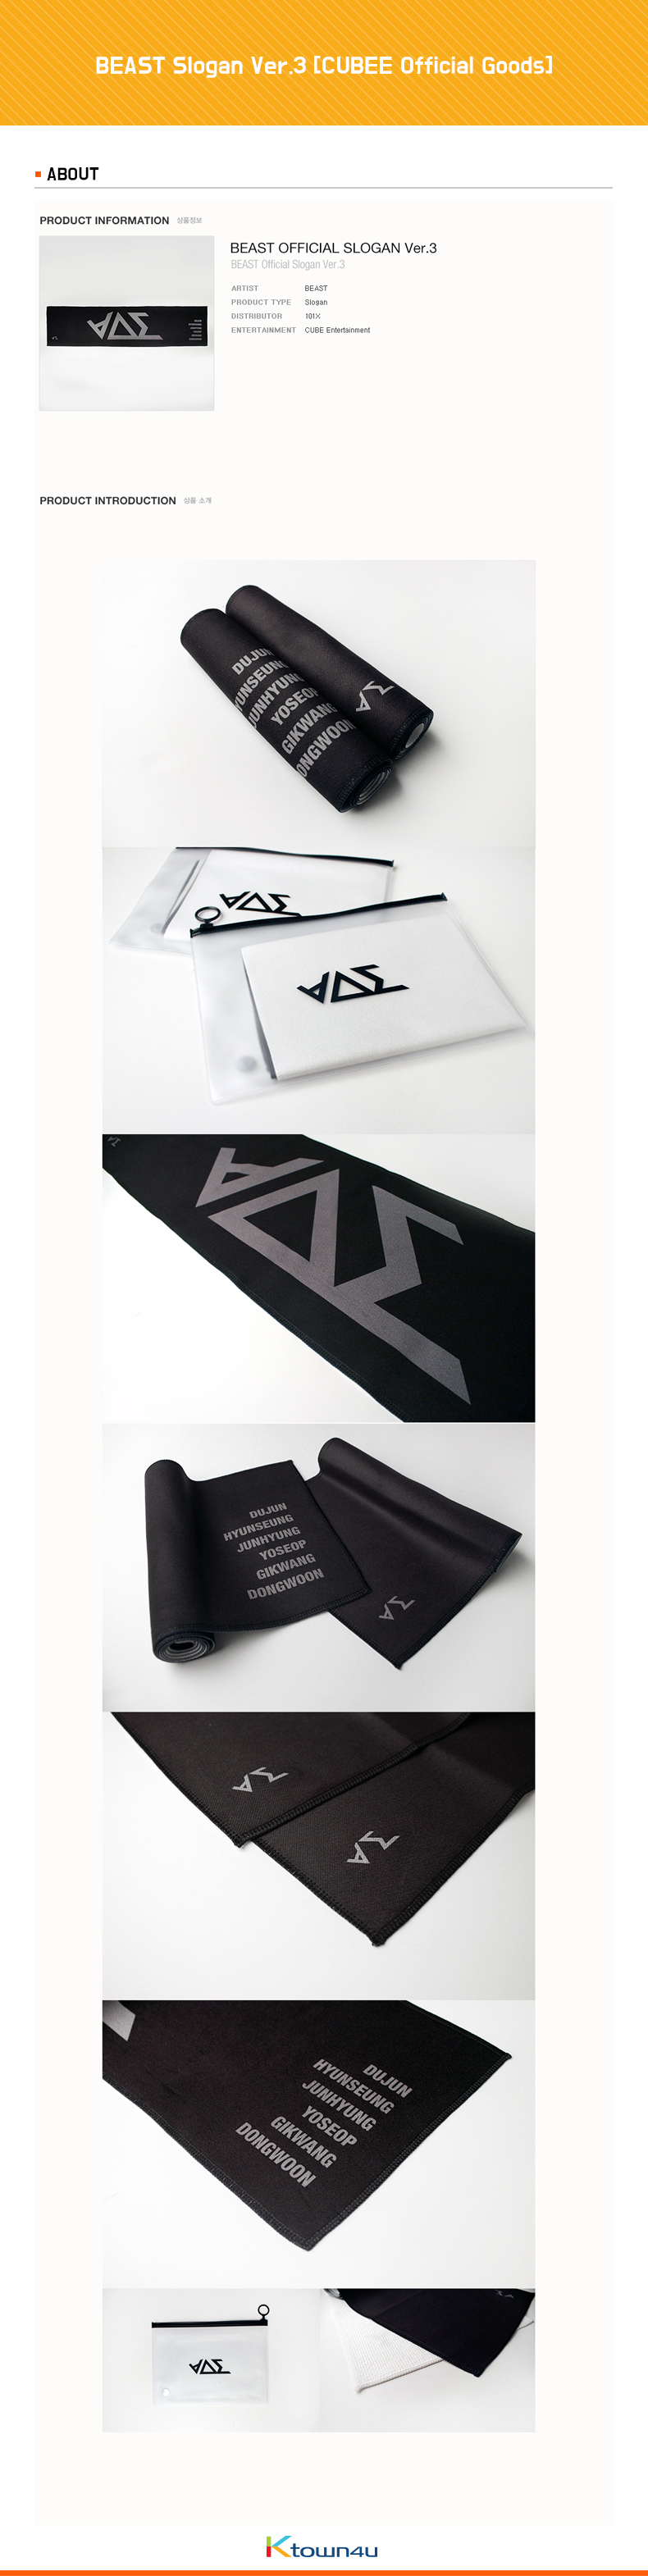 BEAST Slogan Ver.3 [CUBEE Official Goods]